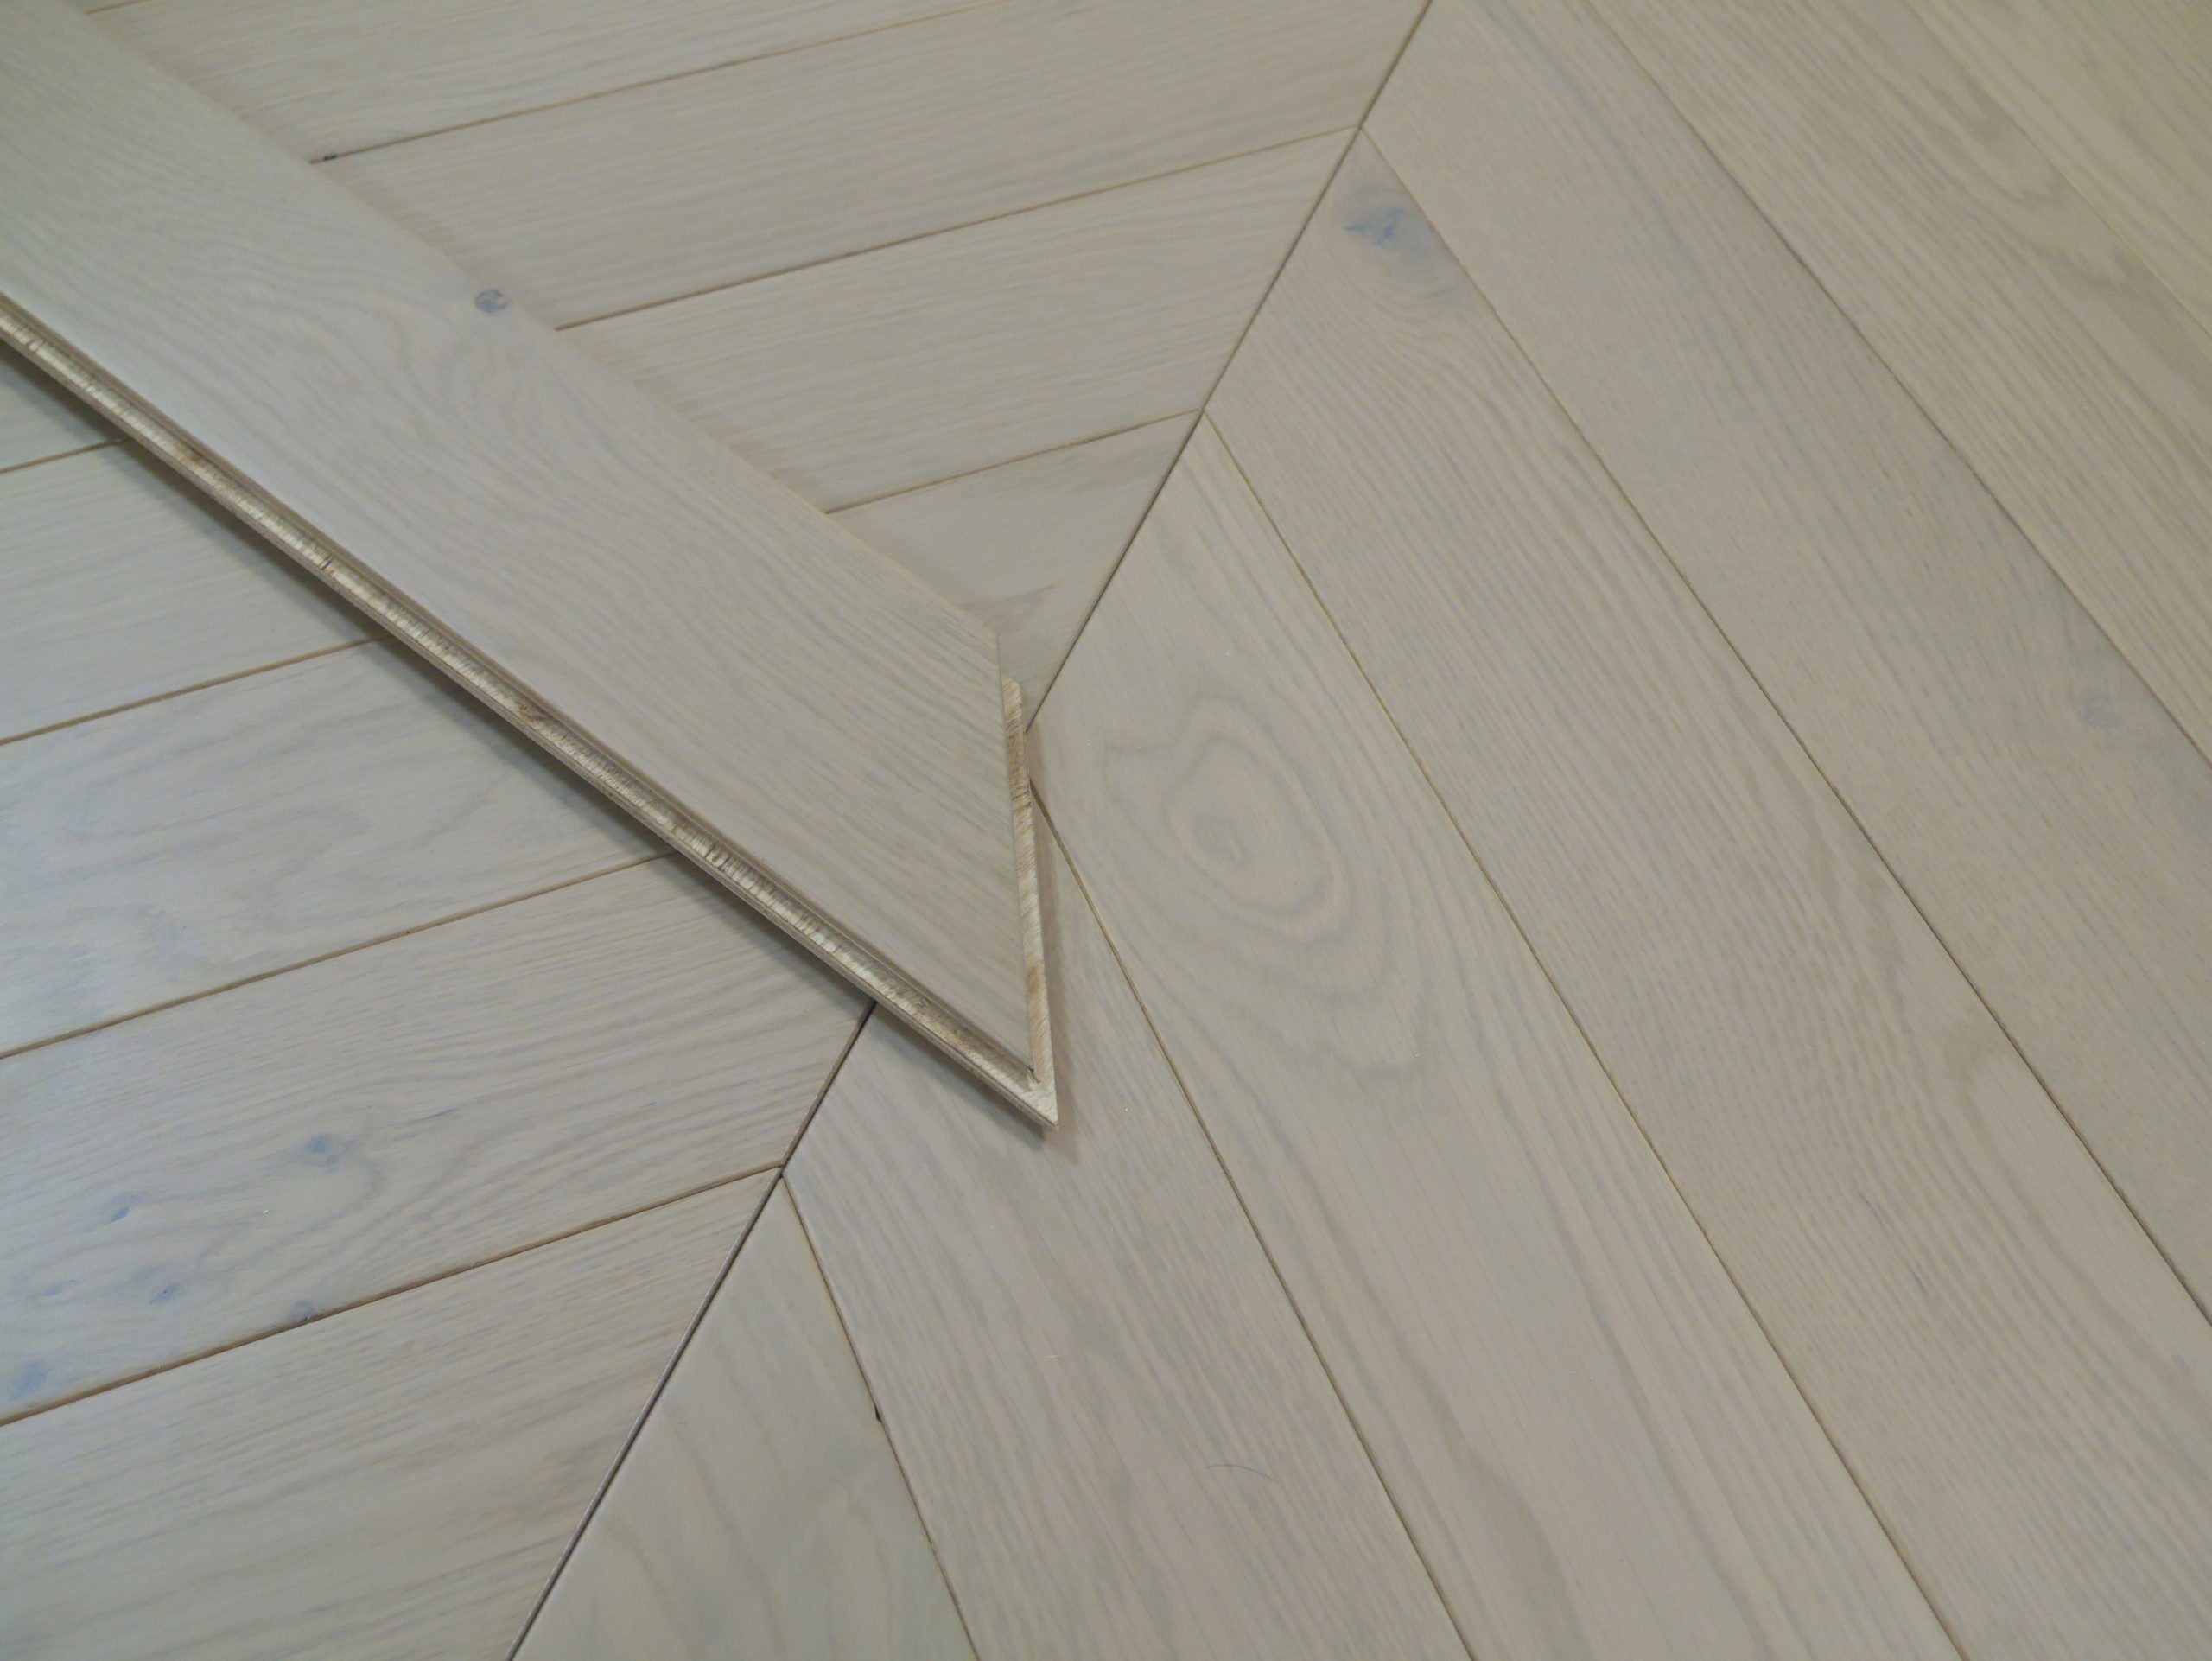 Nevada Chevron 15/4 x 90mm Clad Grey Oak Herringbone Engineered Flooring